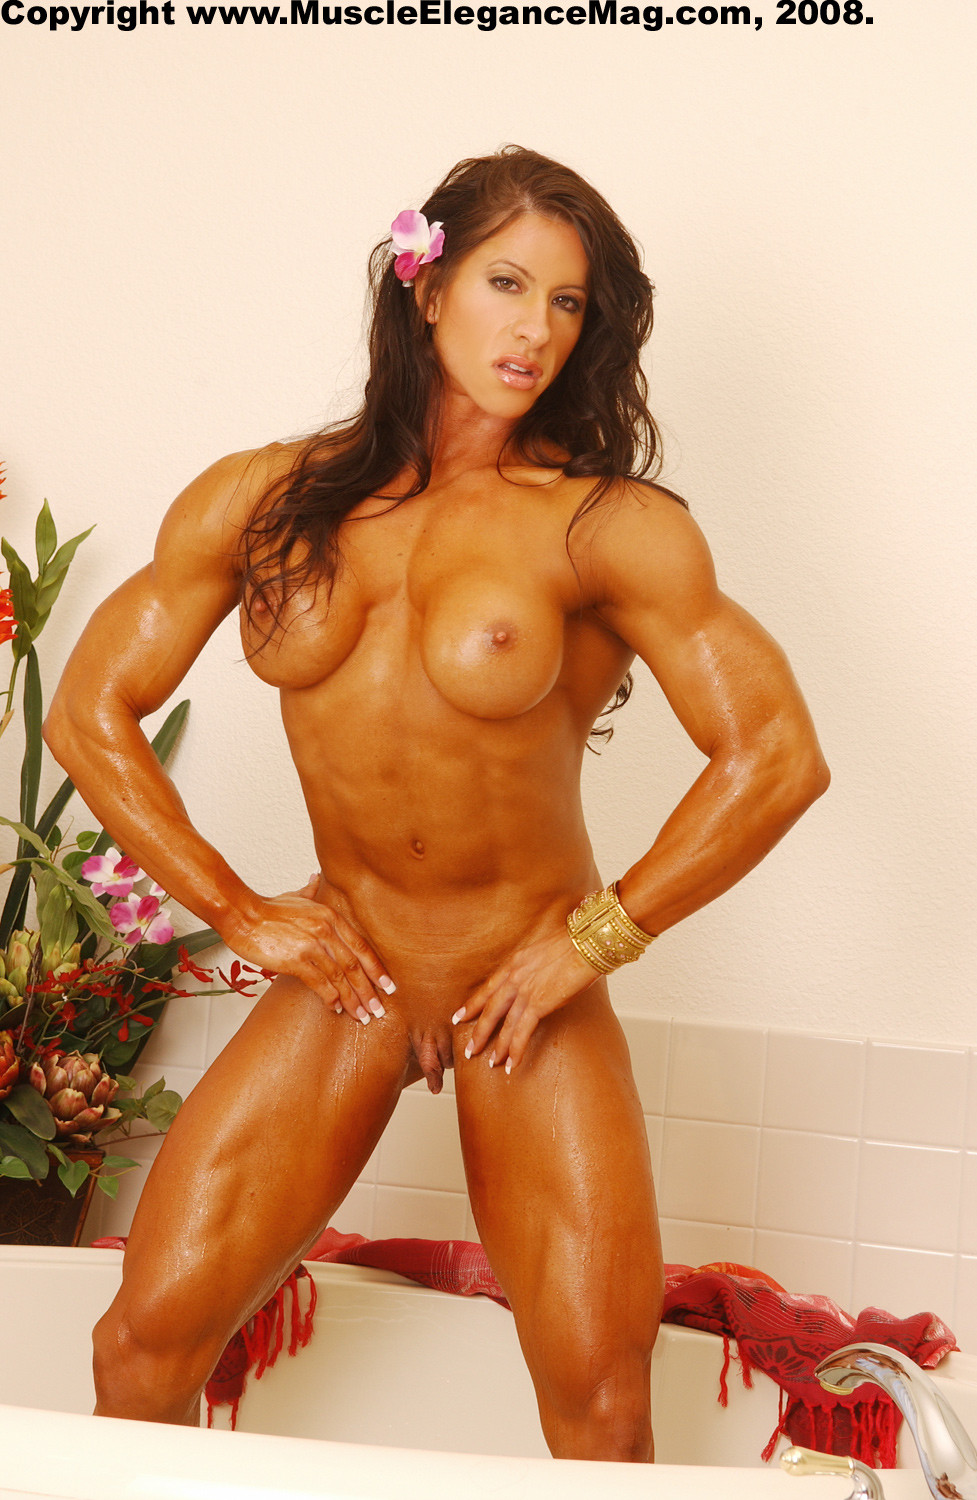 Her eyes body builder clitoris pics very